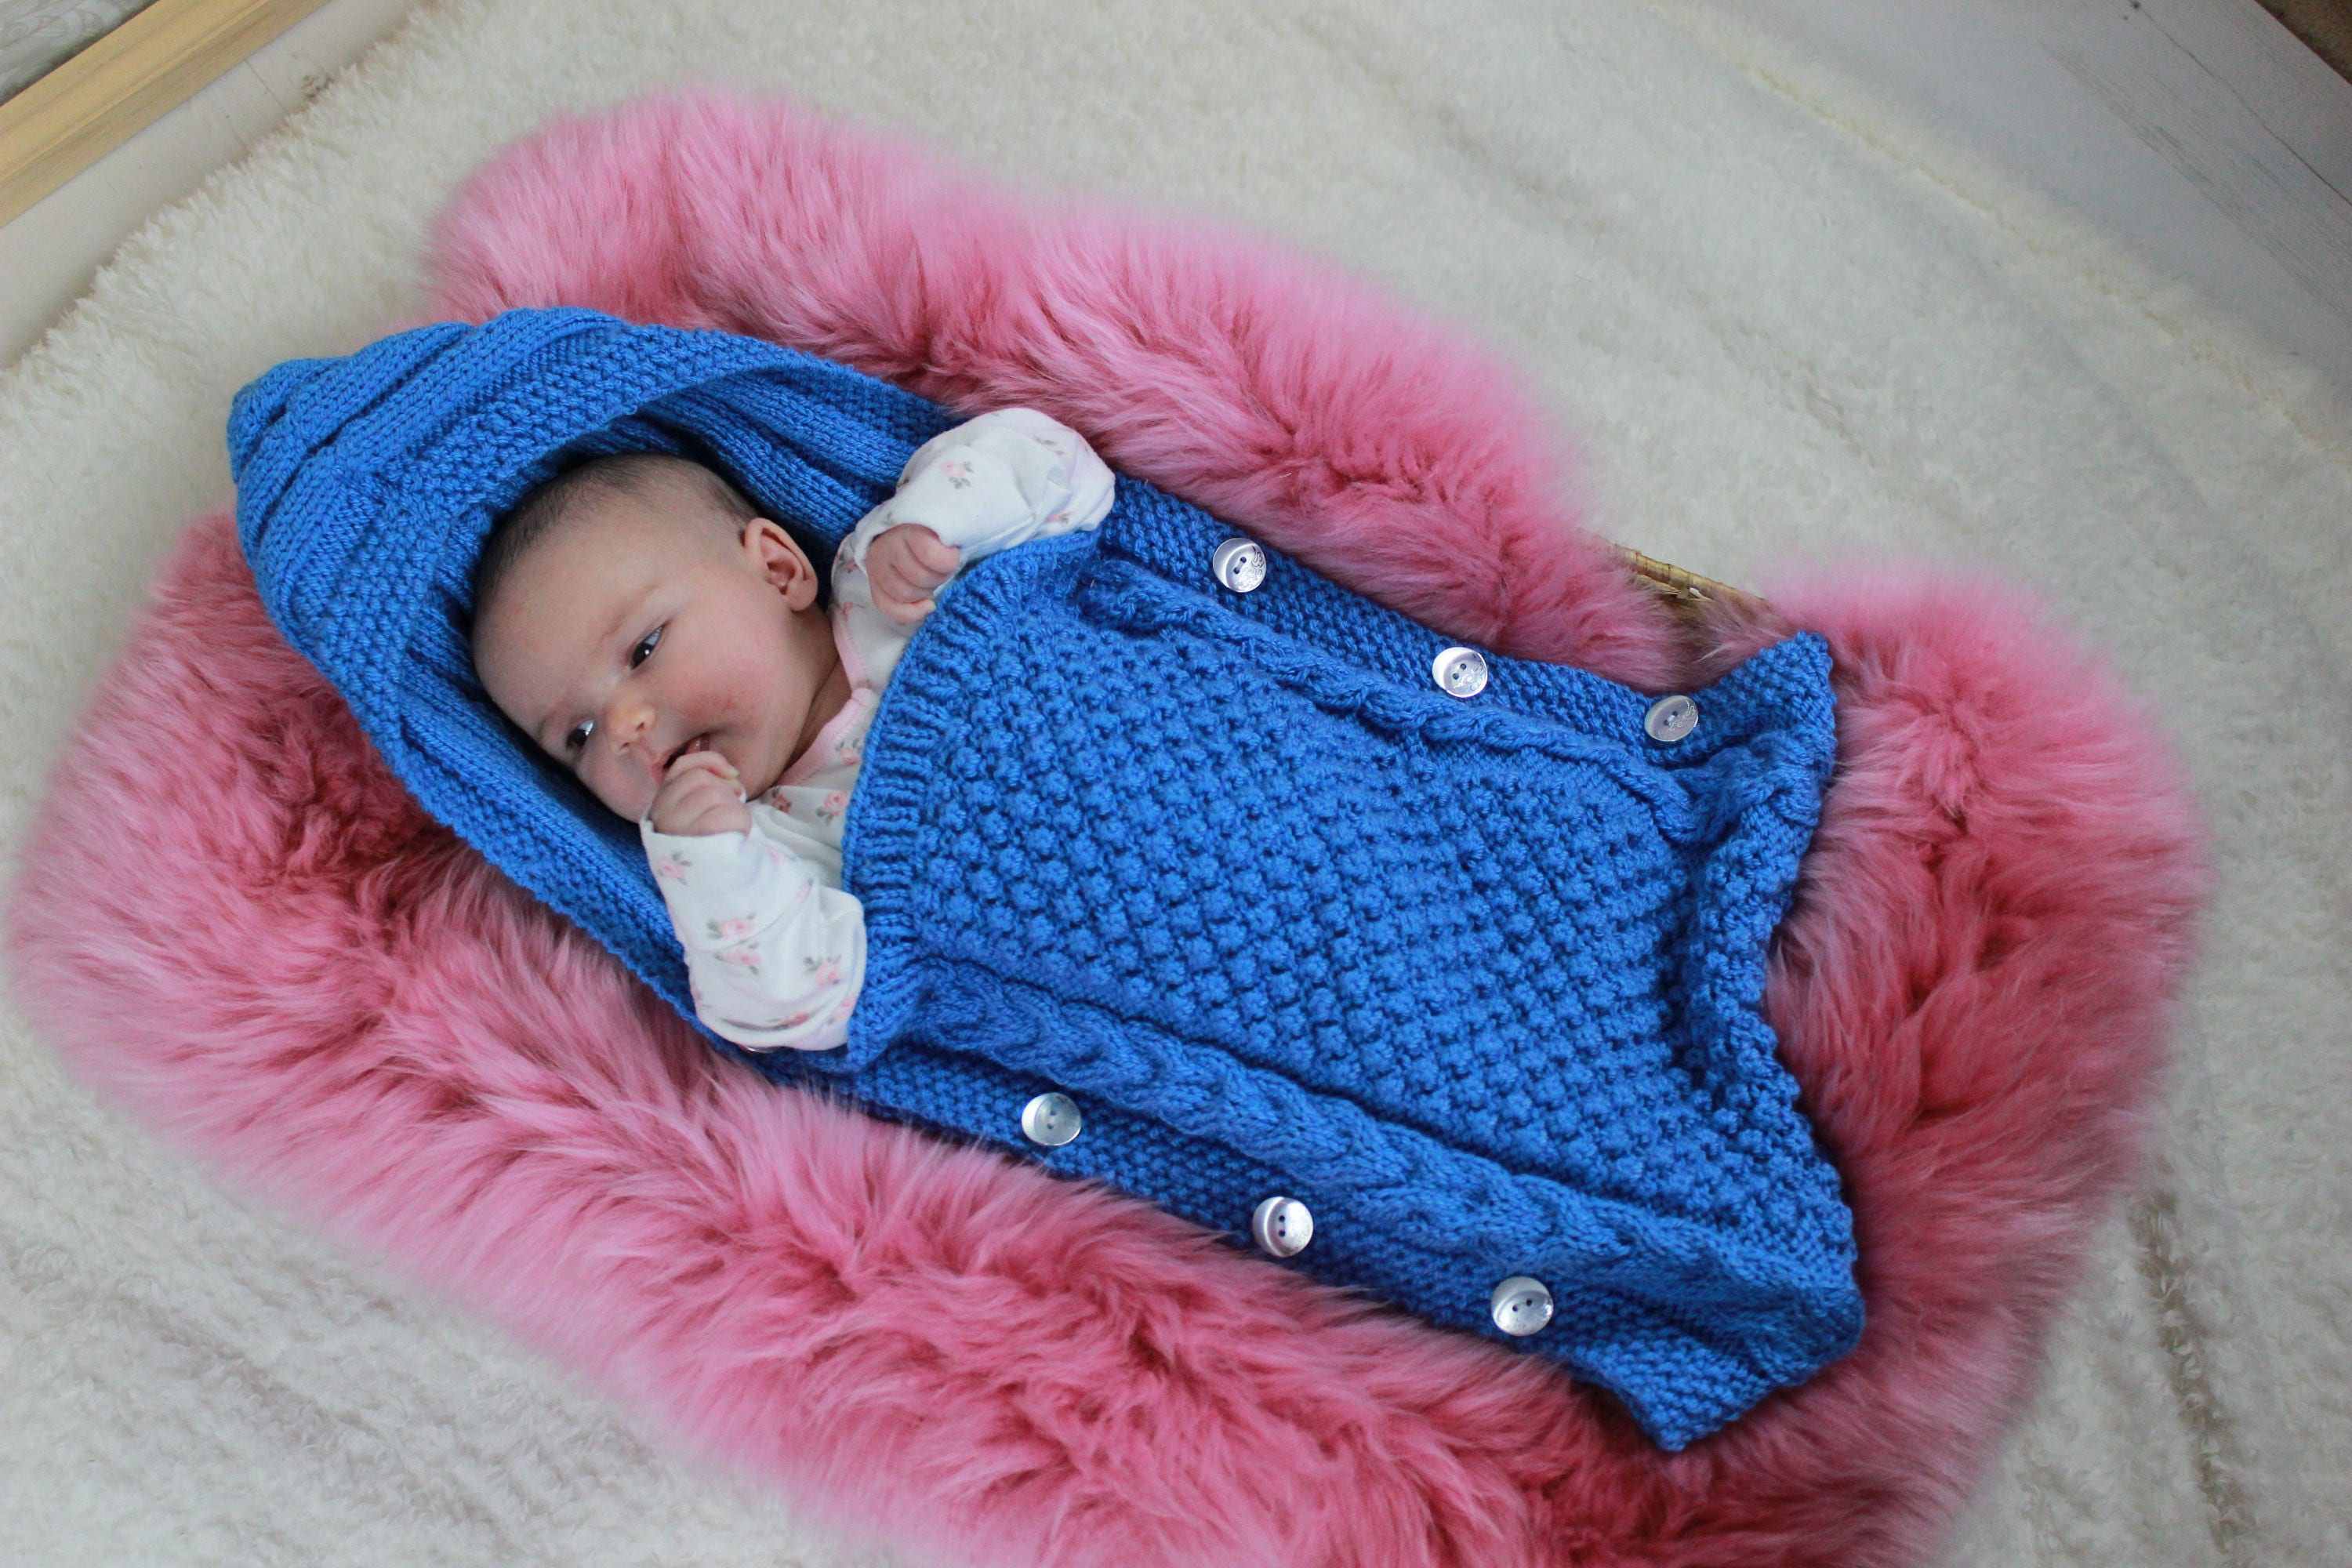 Baby Knitting Patterns Sleeping Bag : KNITTING PATTERN For Baby Sleeping Bag Cocoon Papoose